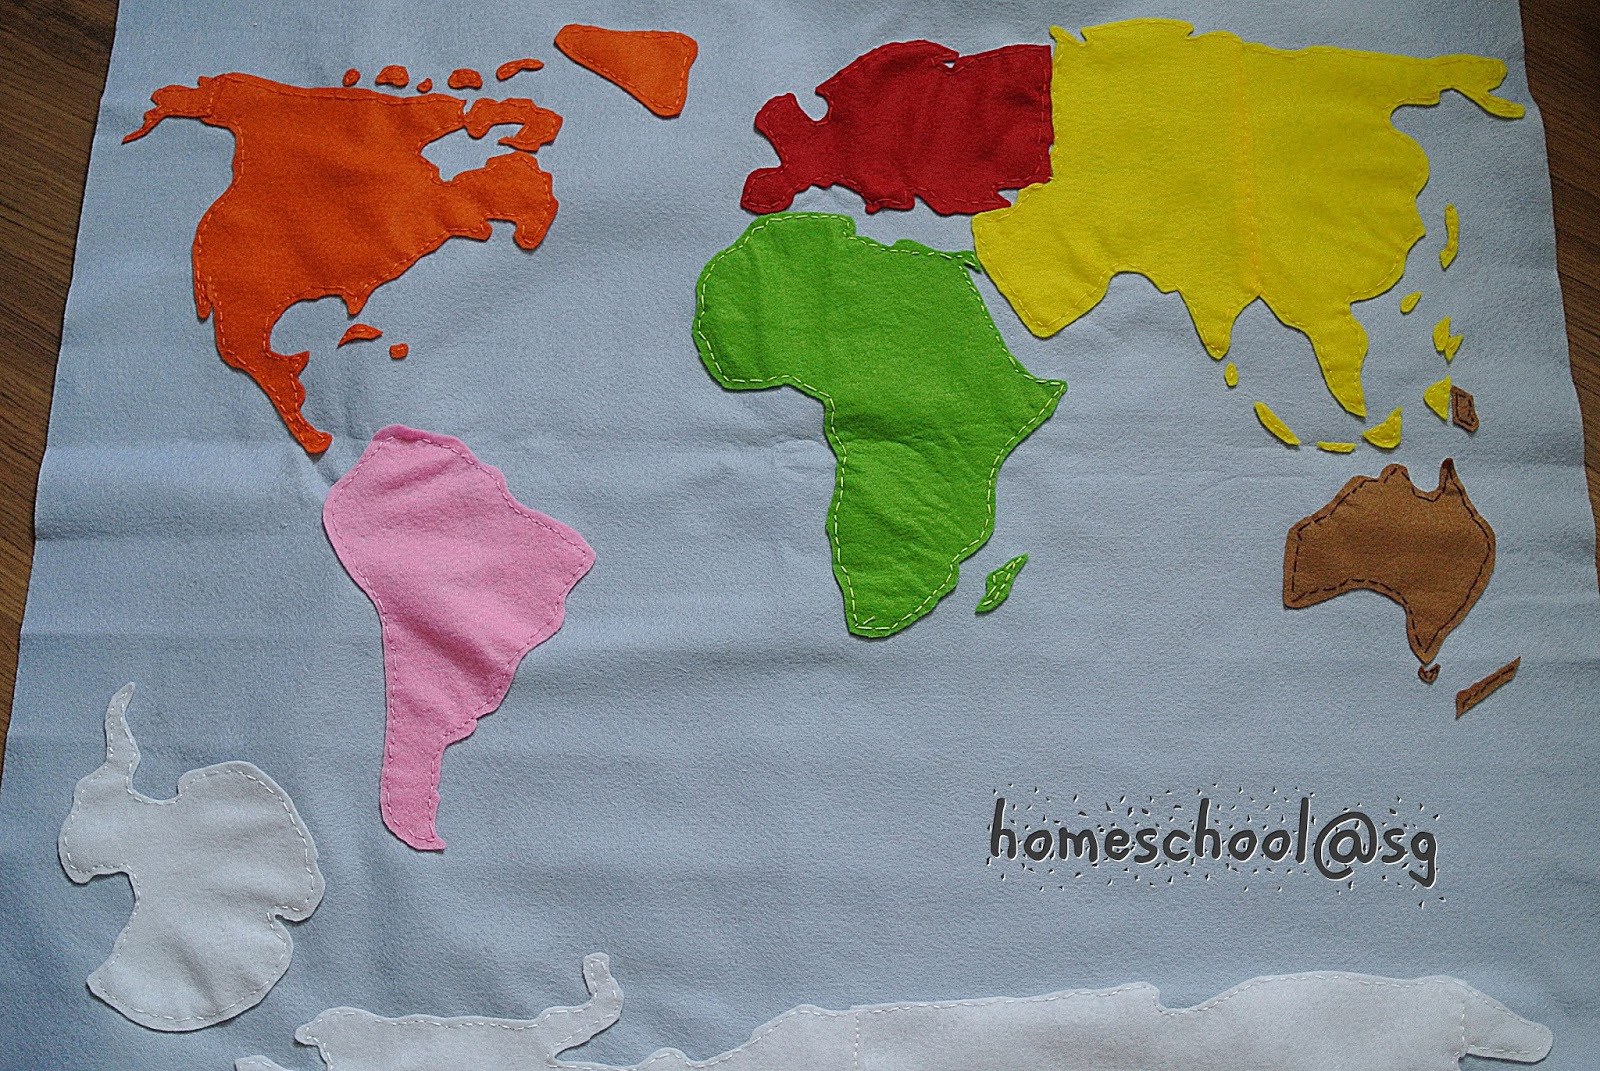 Homeschoolsg diy continent map diy continent map gumiabroncs Images